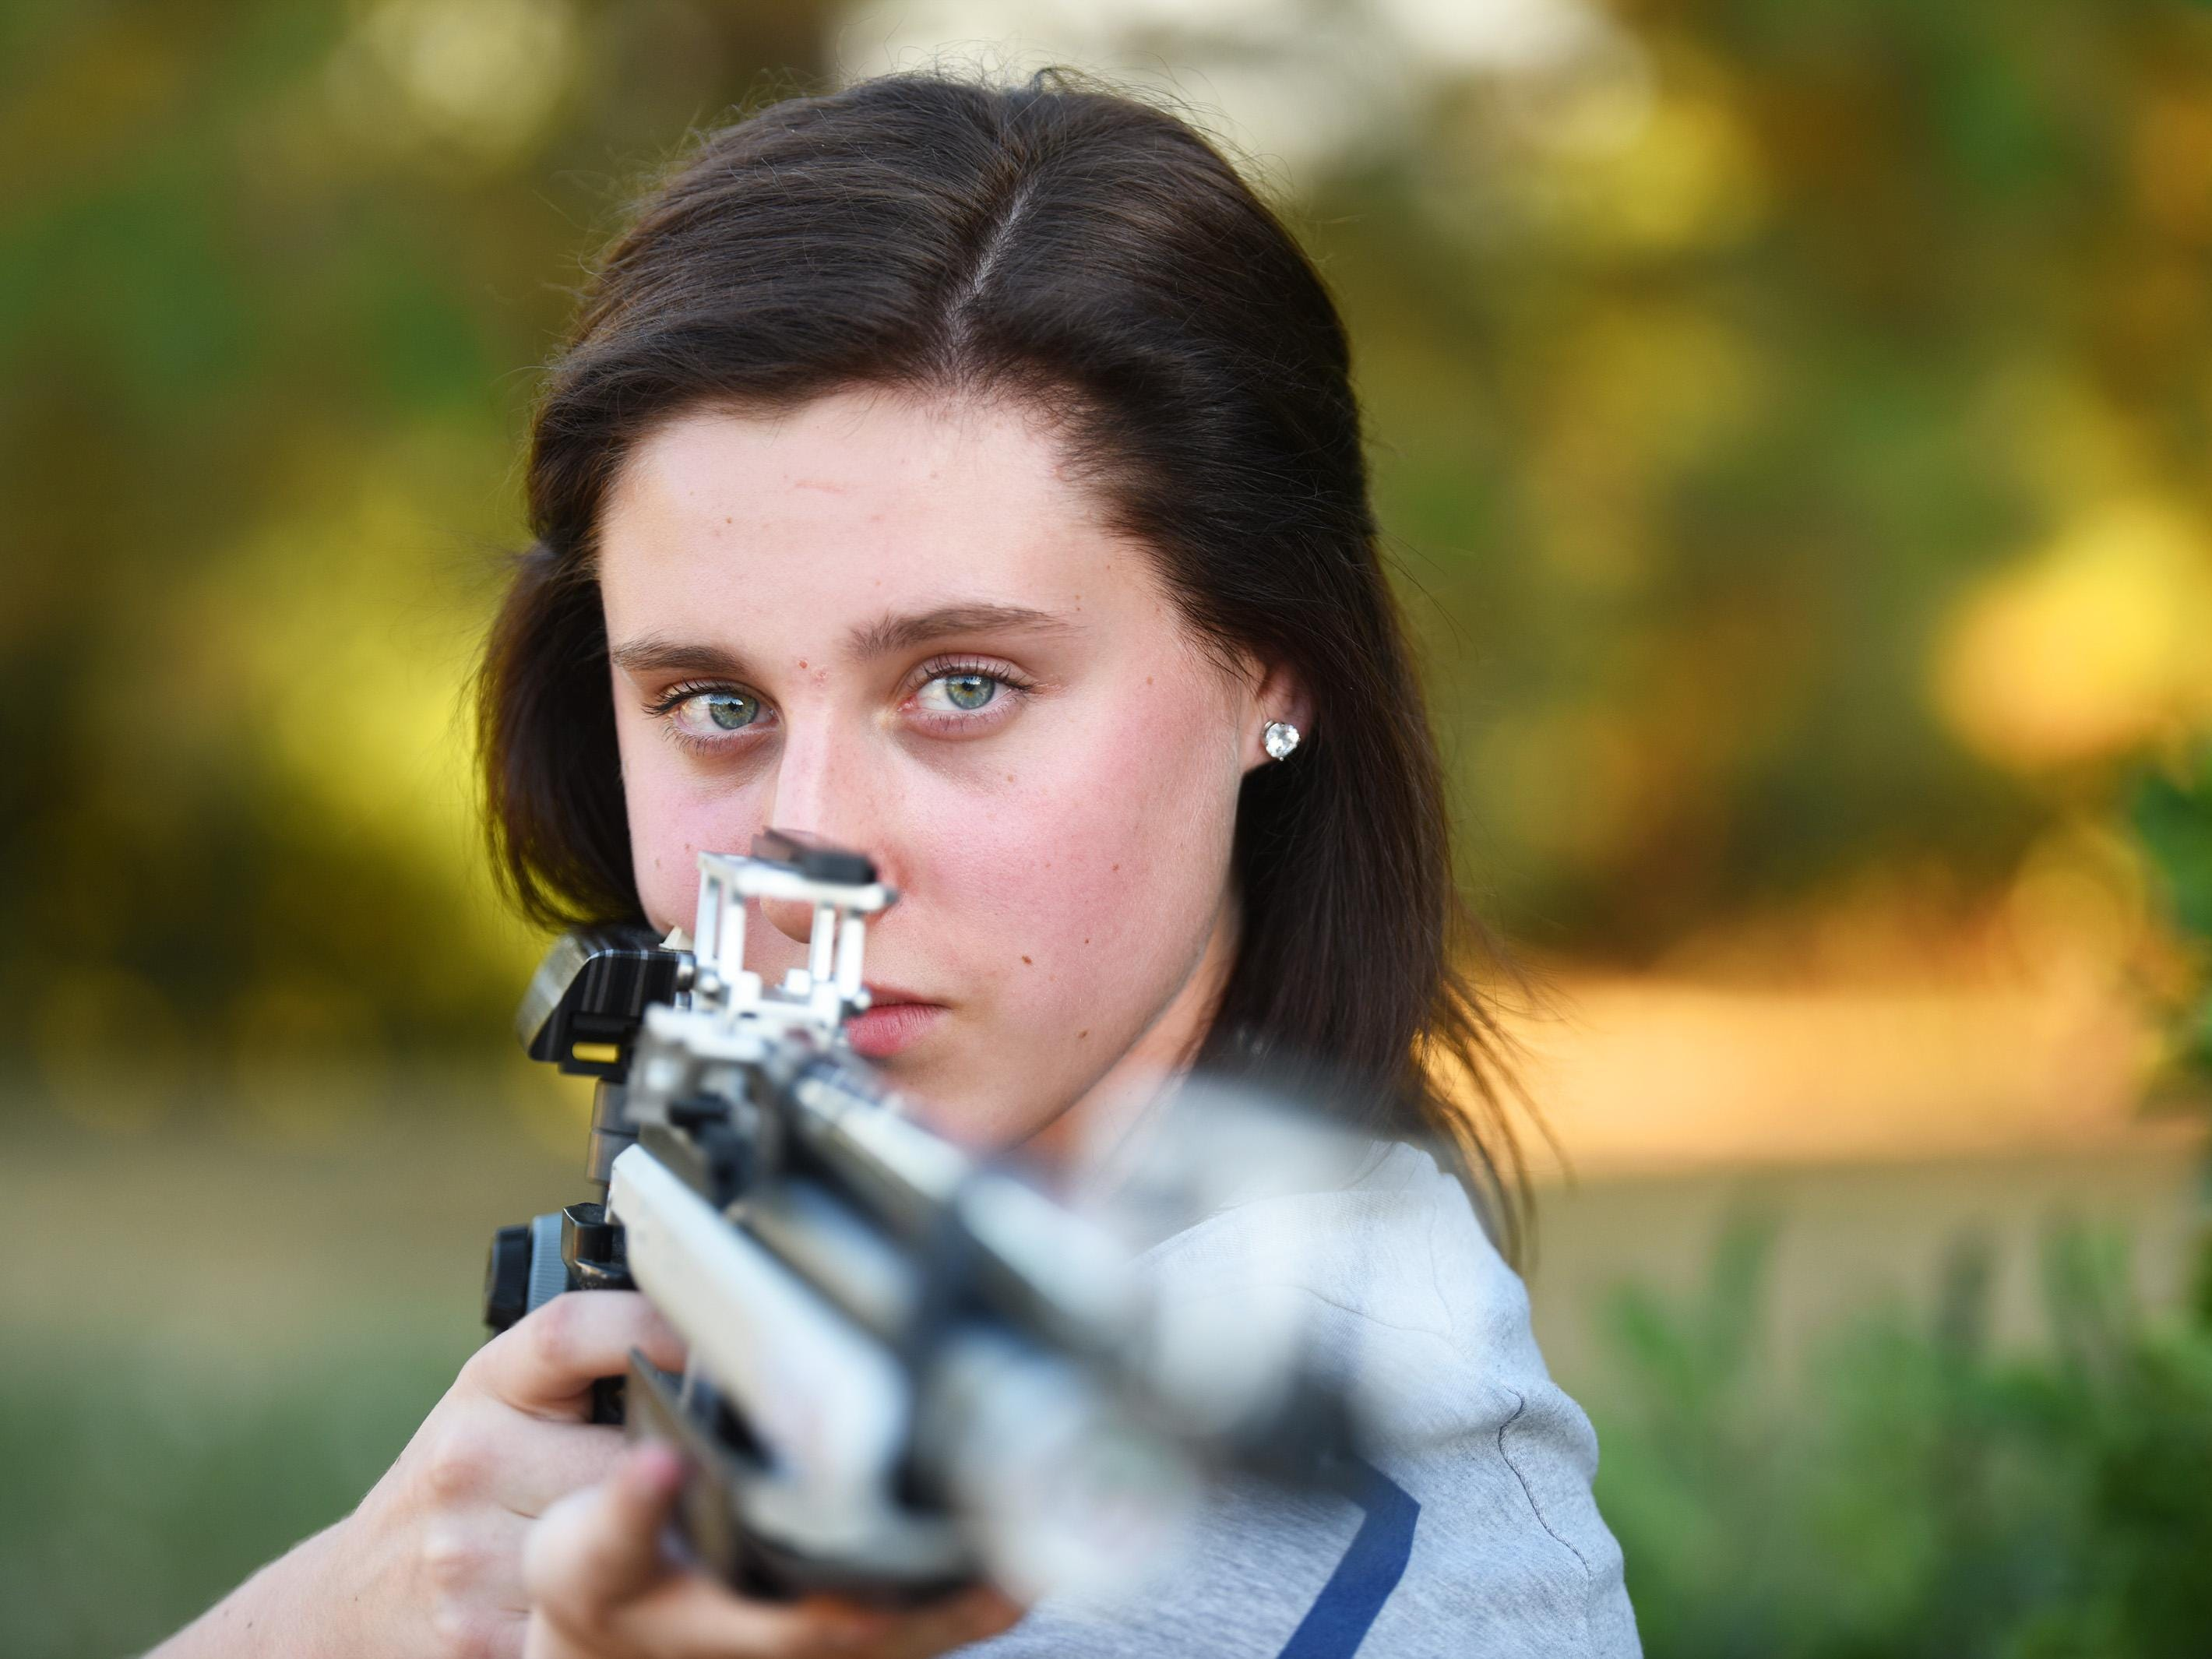 Emily Cock didn't beleve her father when he told her she had qualified for Team USA for the International Shooting Sport Federation's World Cup.